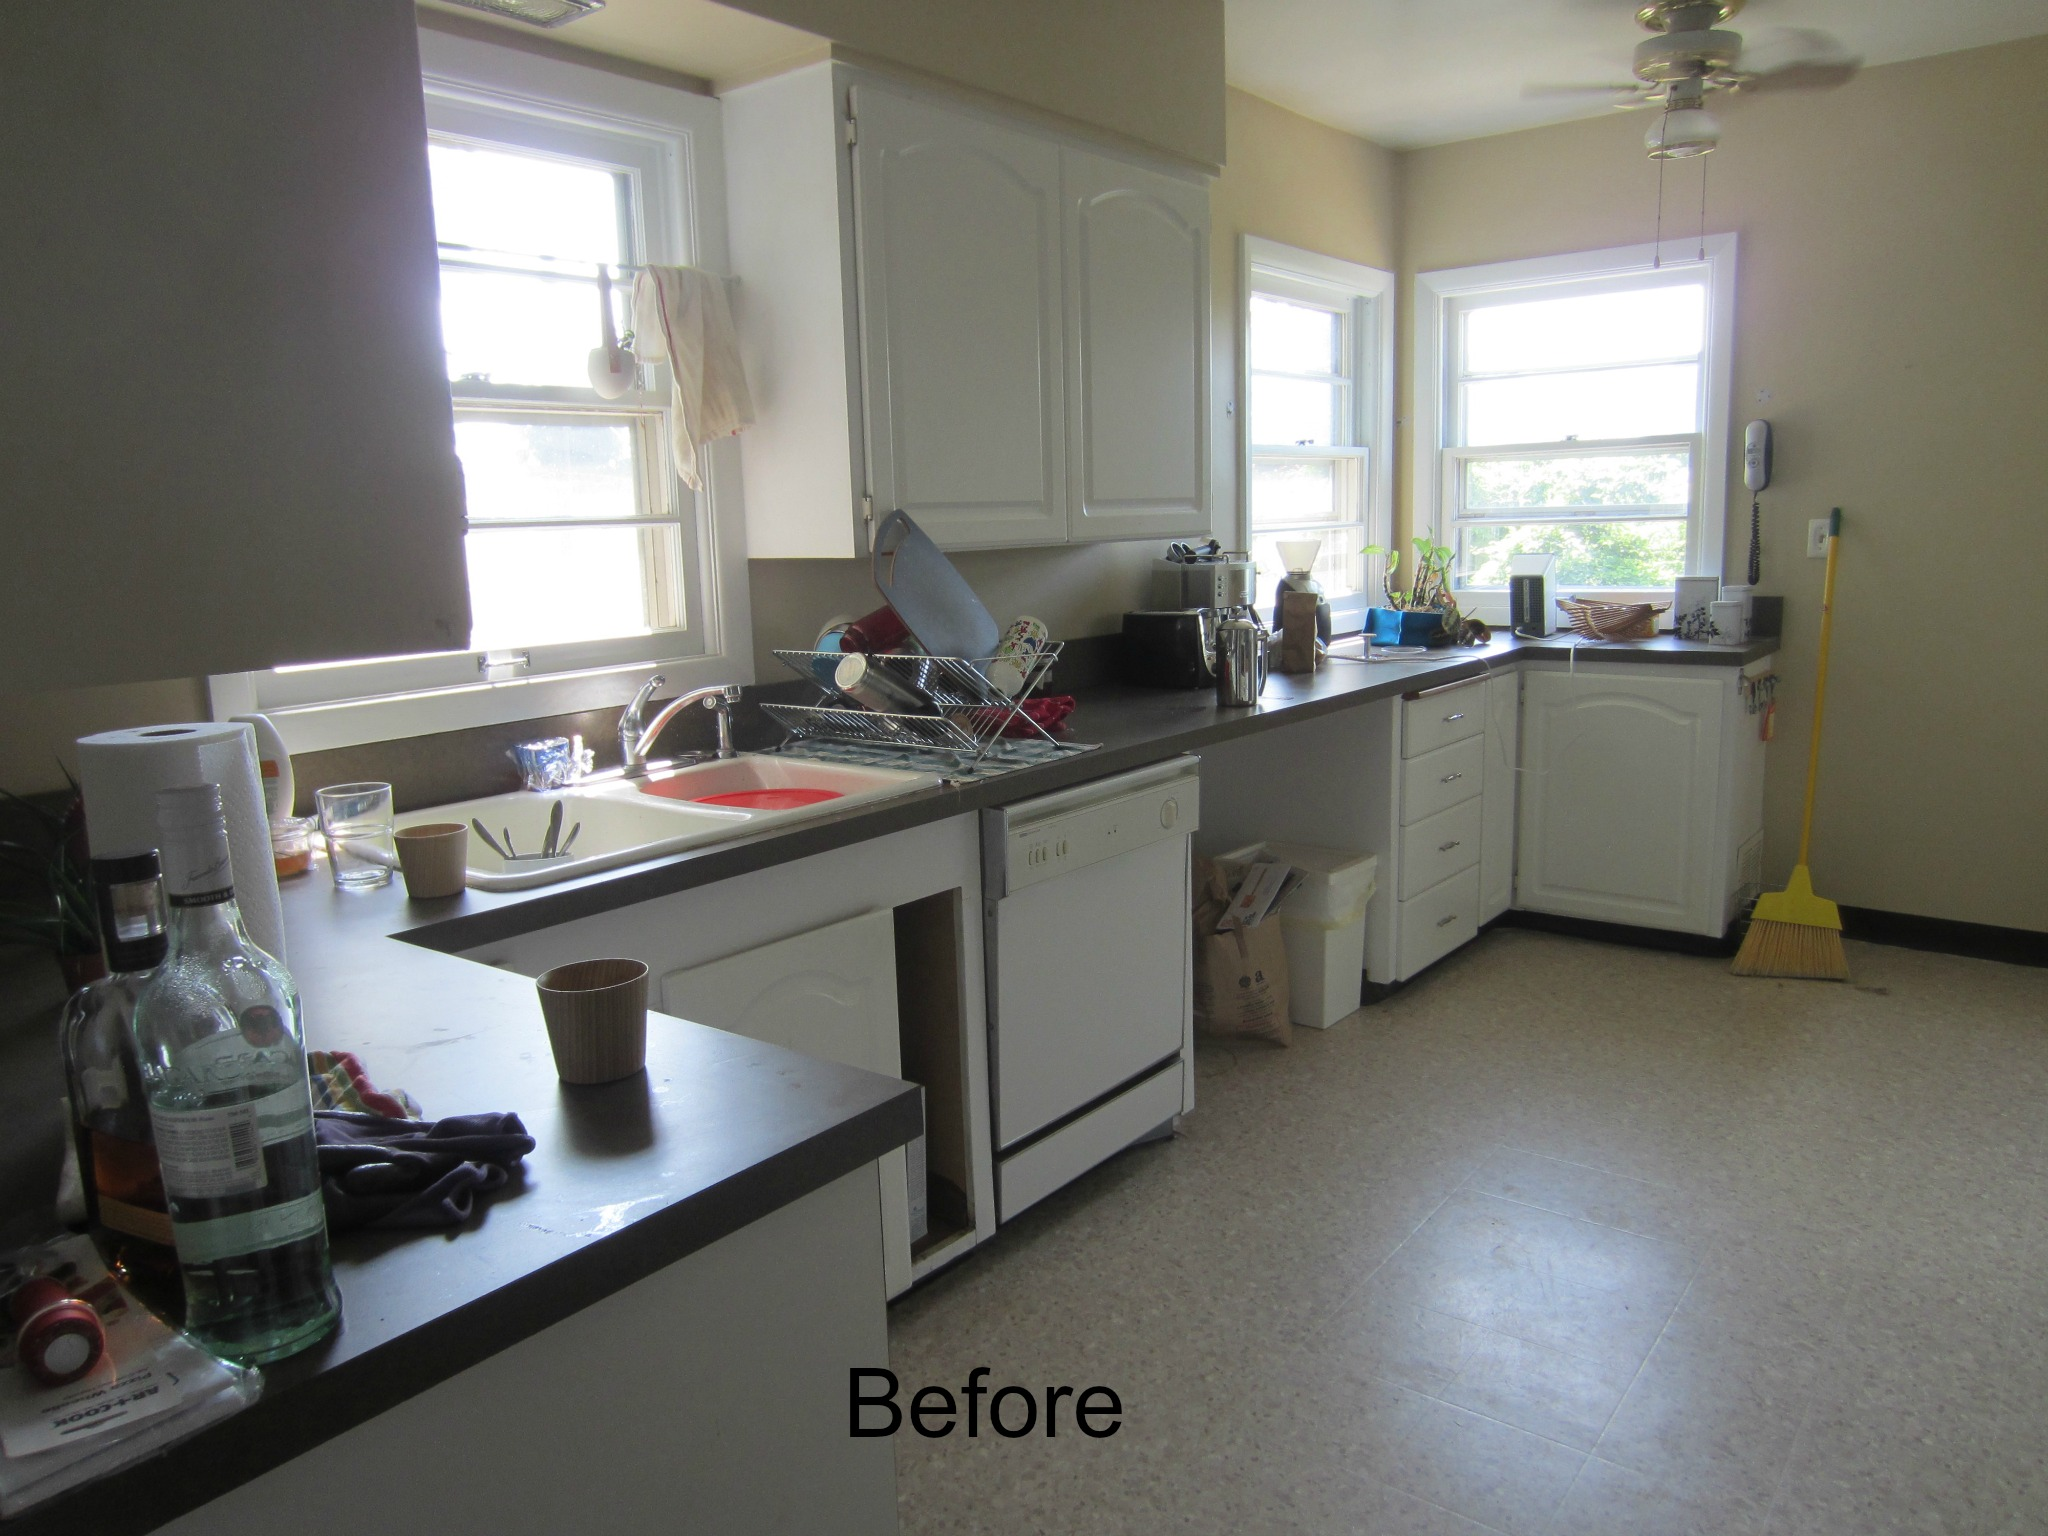 The kitchen before the remodel